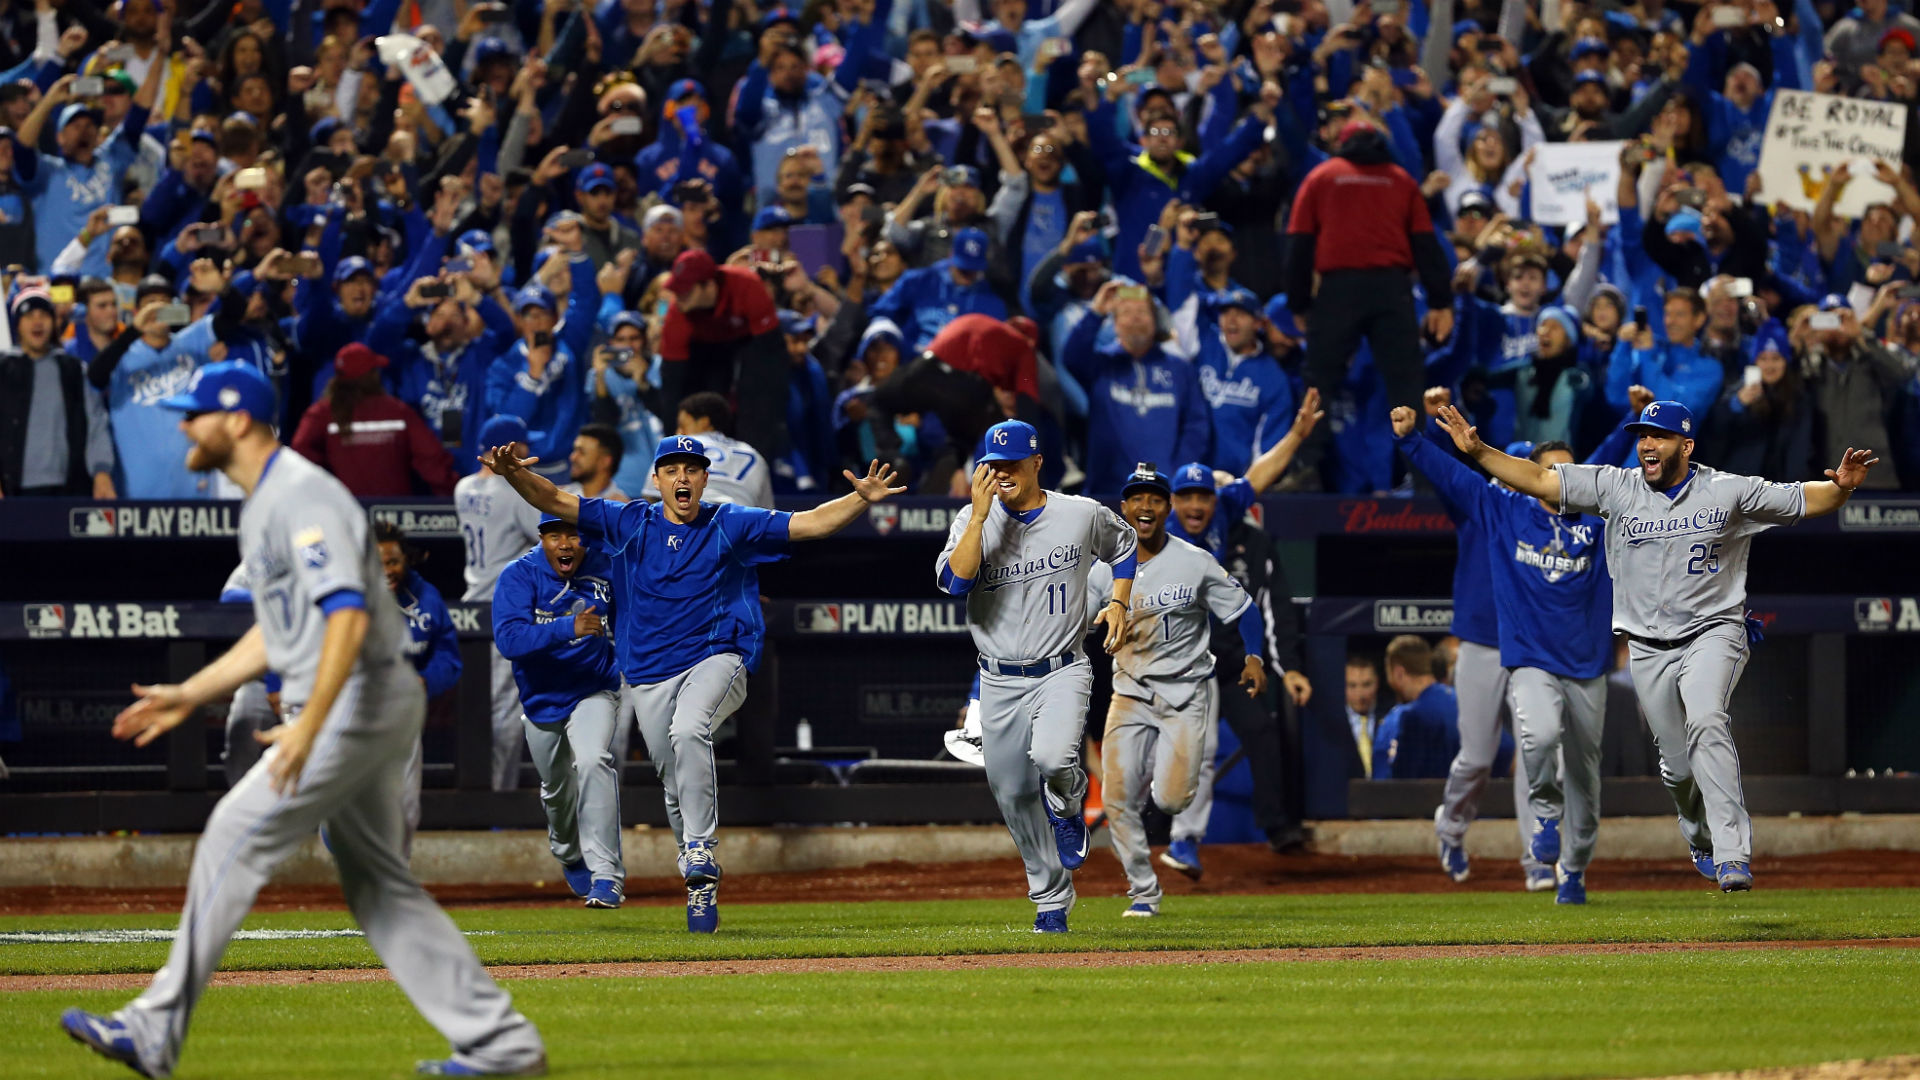 royals, 2015 world series, mlb, sports, ultimate spotlight, ultimate spotlight magazine, usl magazine, uslmagazine.com, uslmag.com, usl mag, uslmag, atlanta entertainment magazine, baltimore entertainment magazine, d.c. entertainment magazine